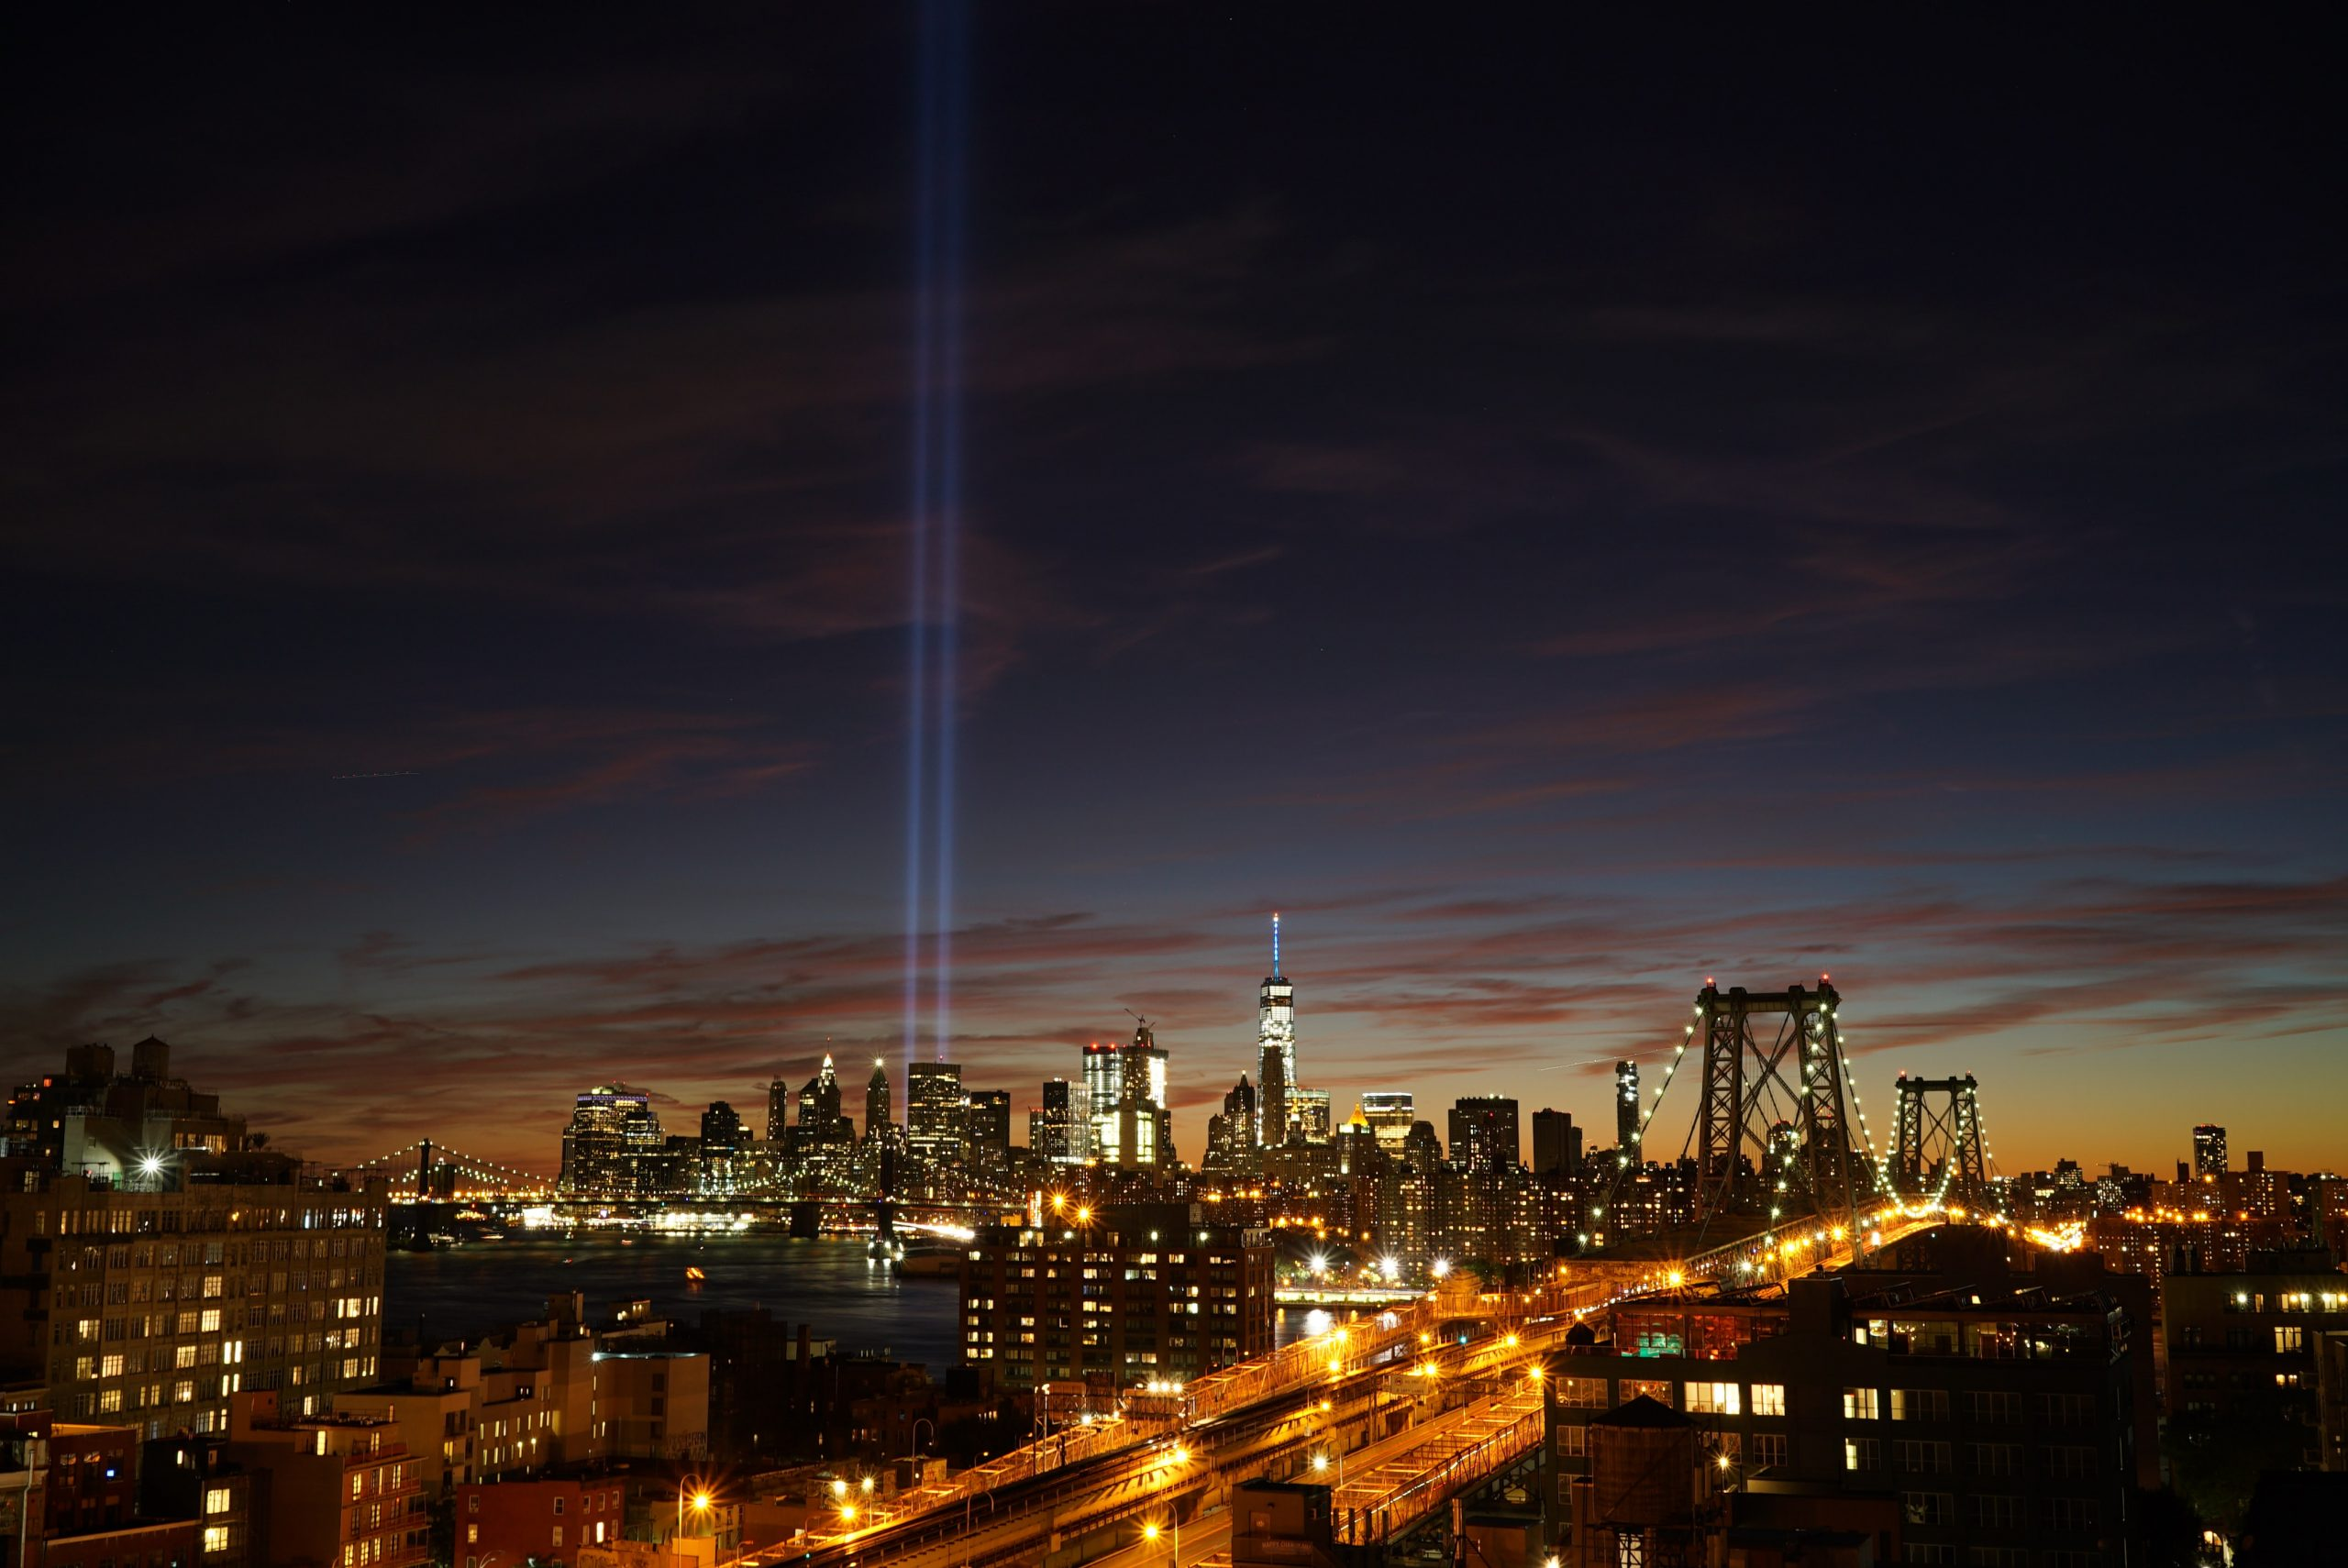 Freedom Tower and Twin Tower lights shown along New York City skyline following September 11